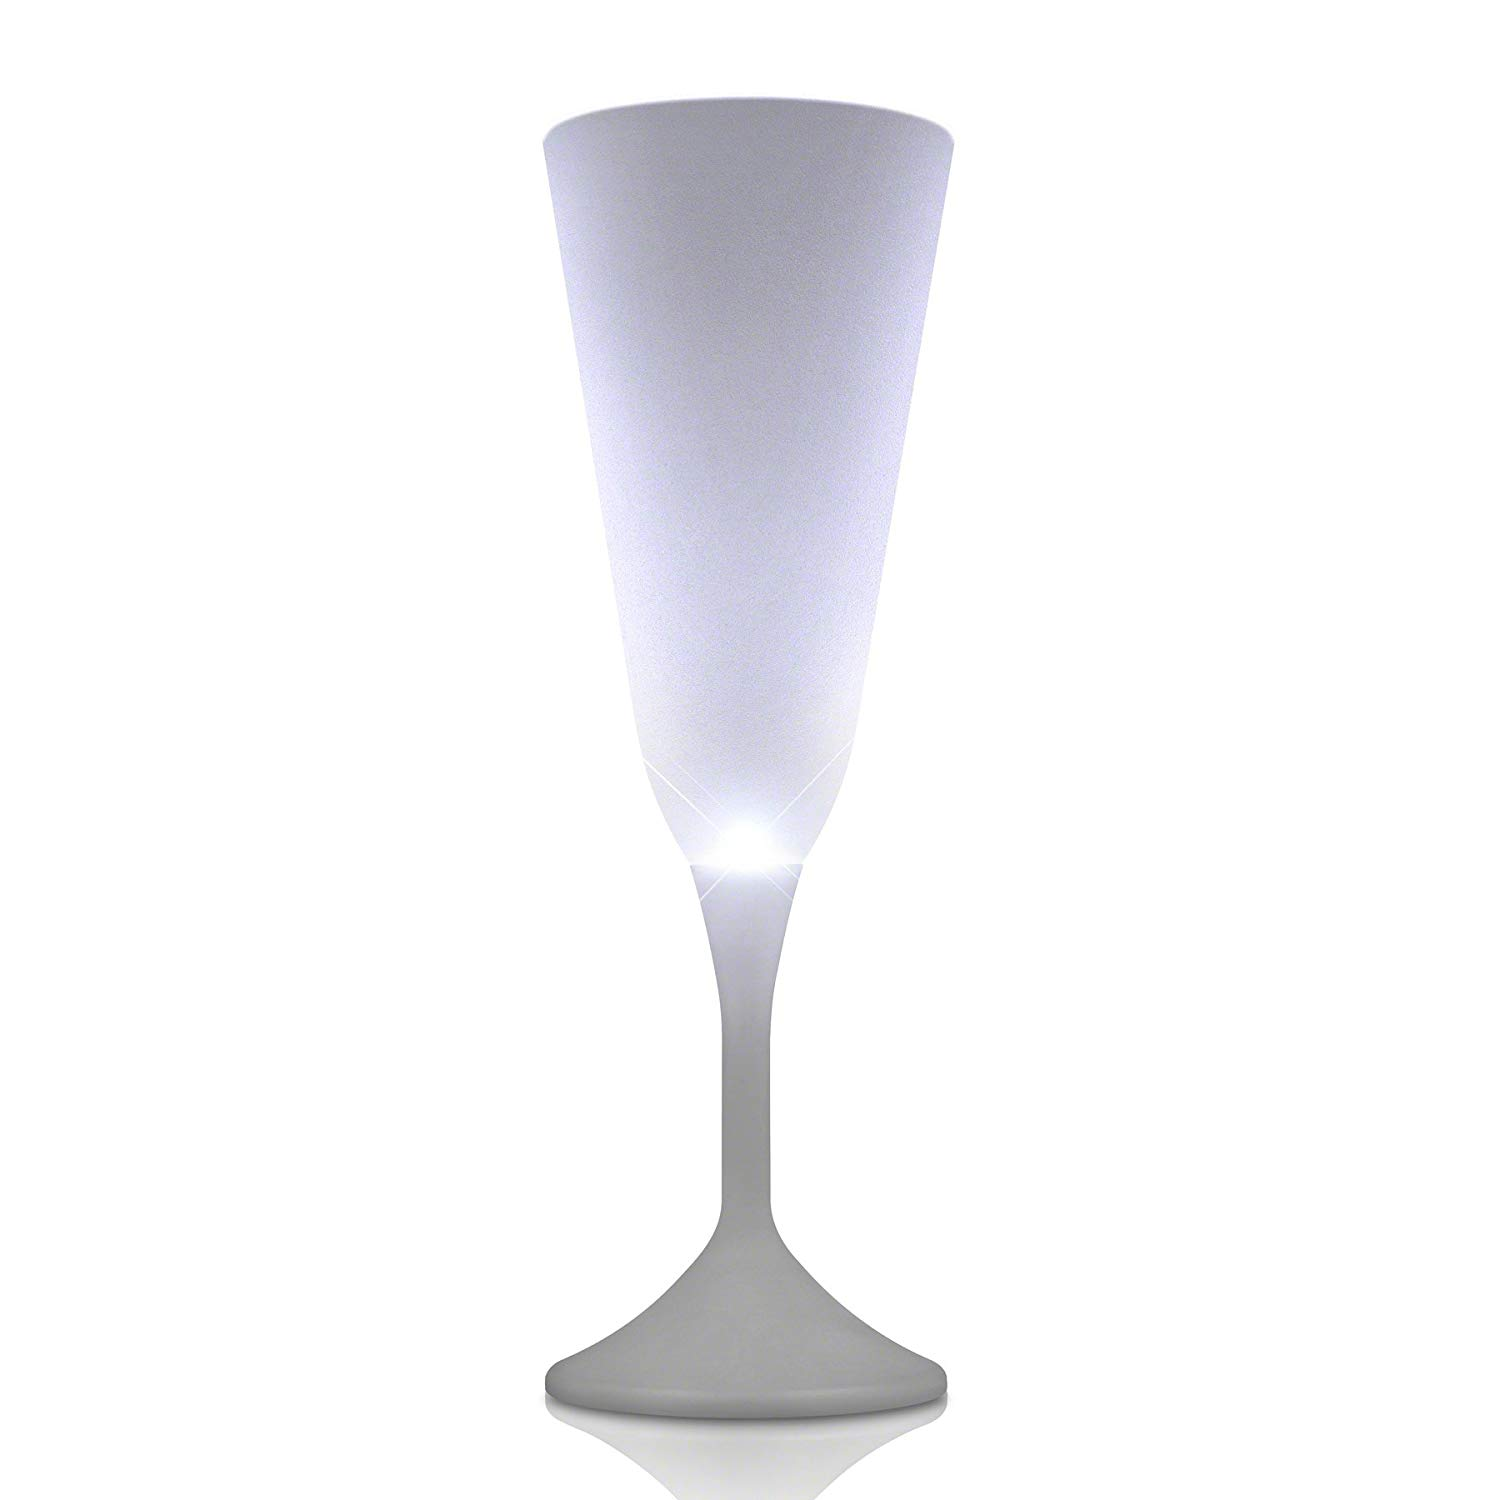 LED Steady White Light Champagne Party Drinking Glass All Products